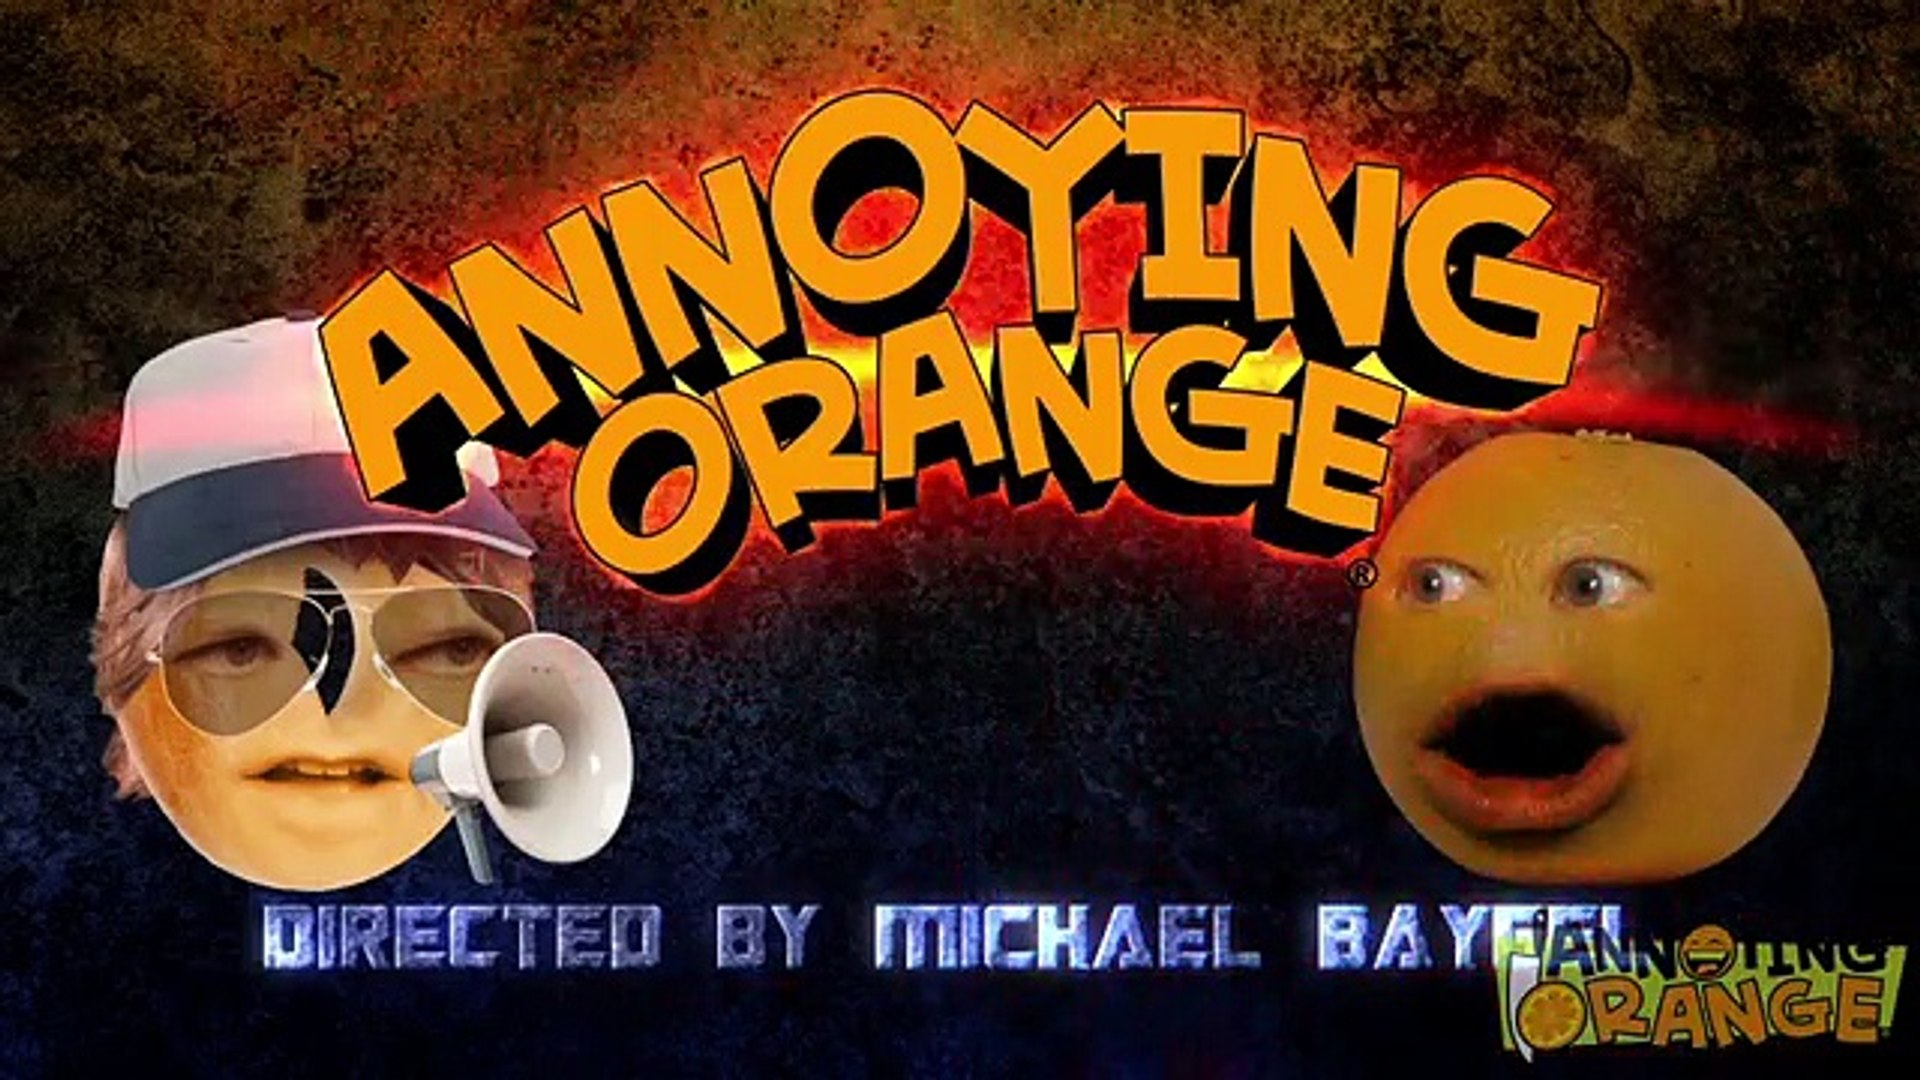 Annoying Orange - Directed By Michael Baygle (Feat. Optimus Prime)